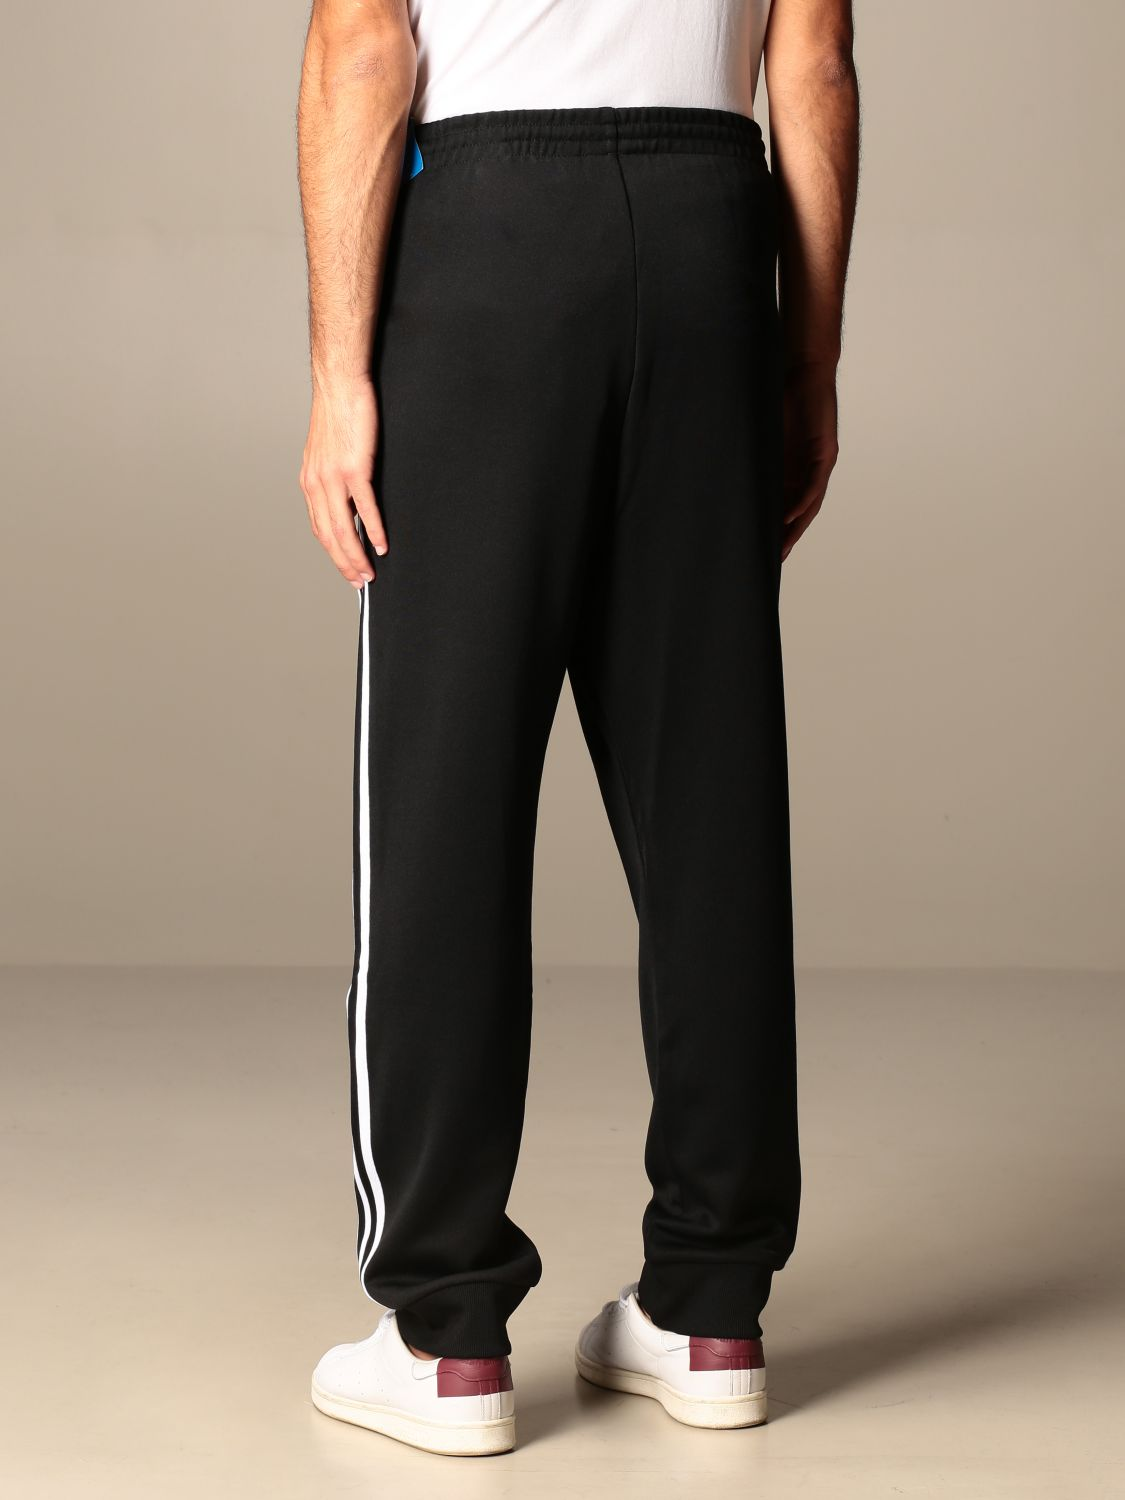 Trousers Adidas Originals: Trousers men Adidas Originals black 3